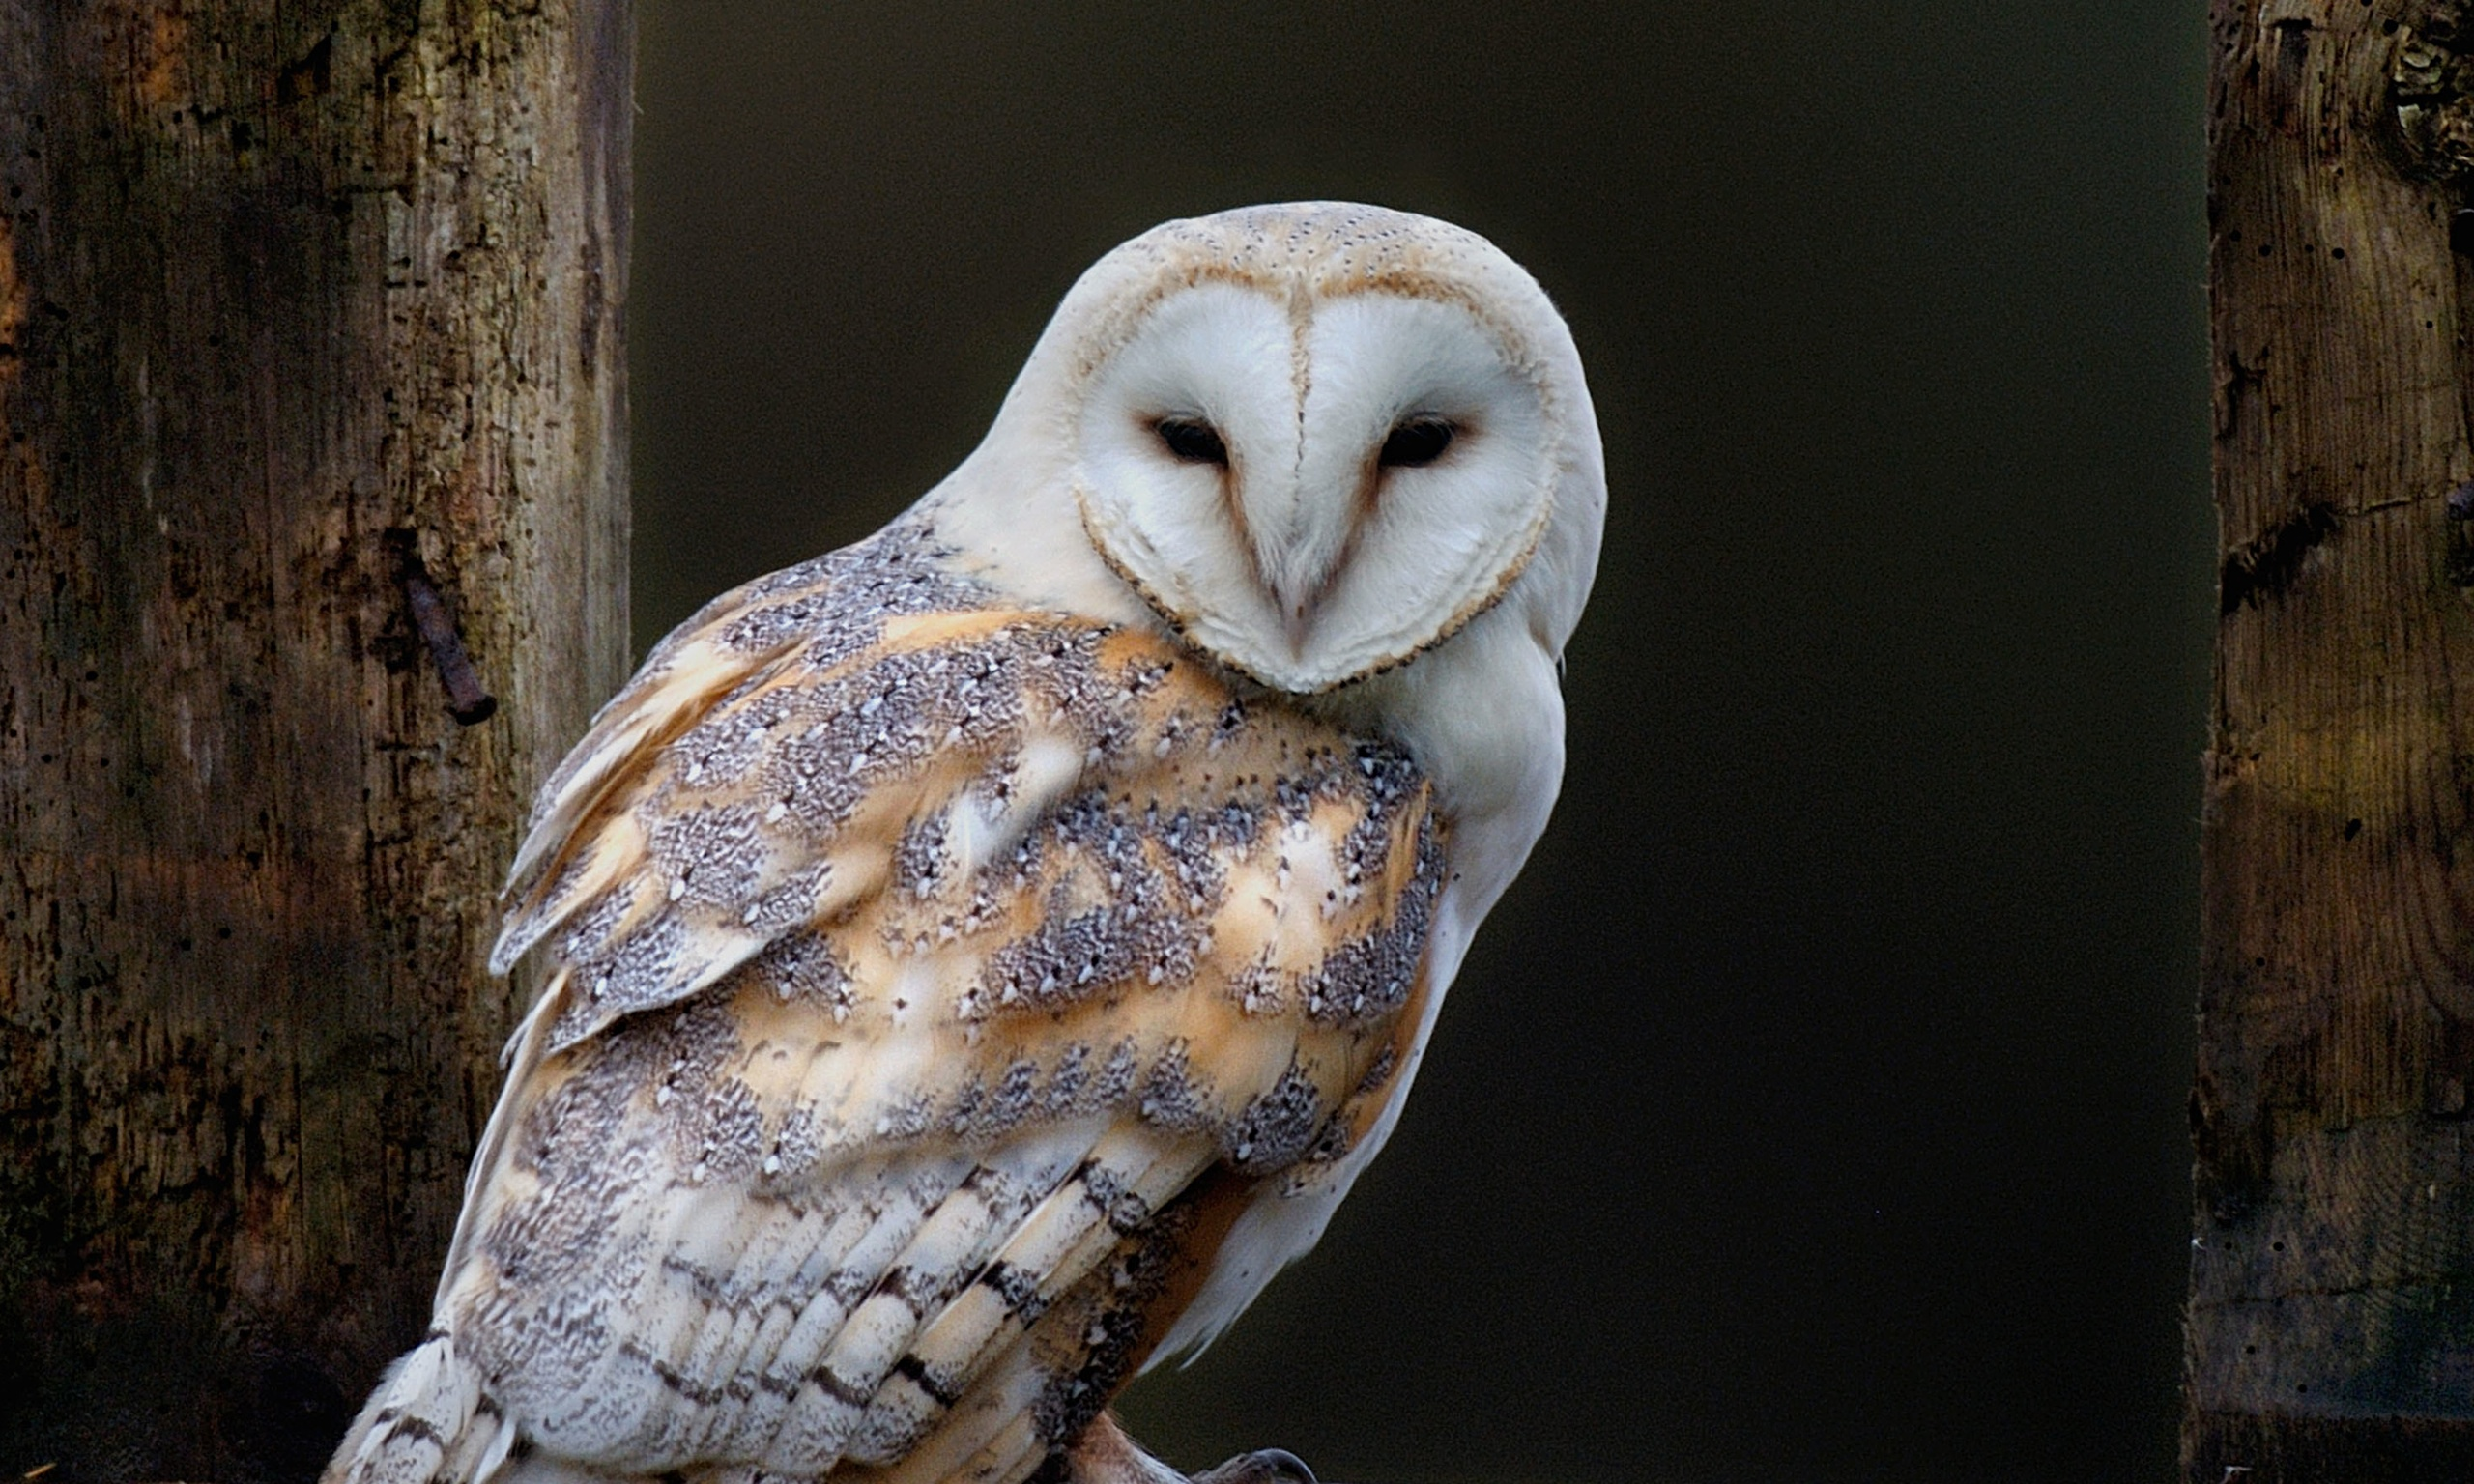 Curb on rat poisons urged to protect barn owls ...